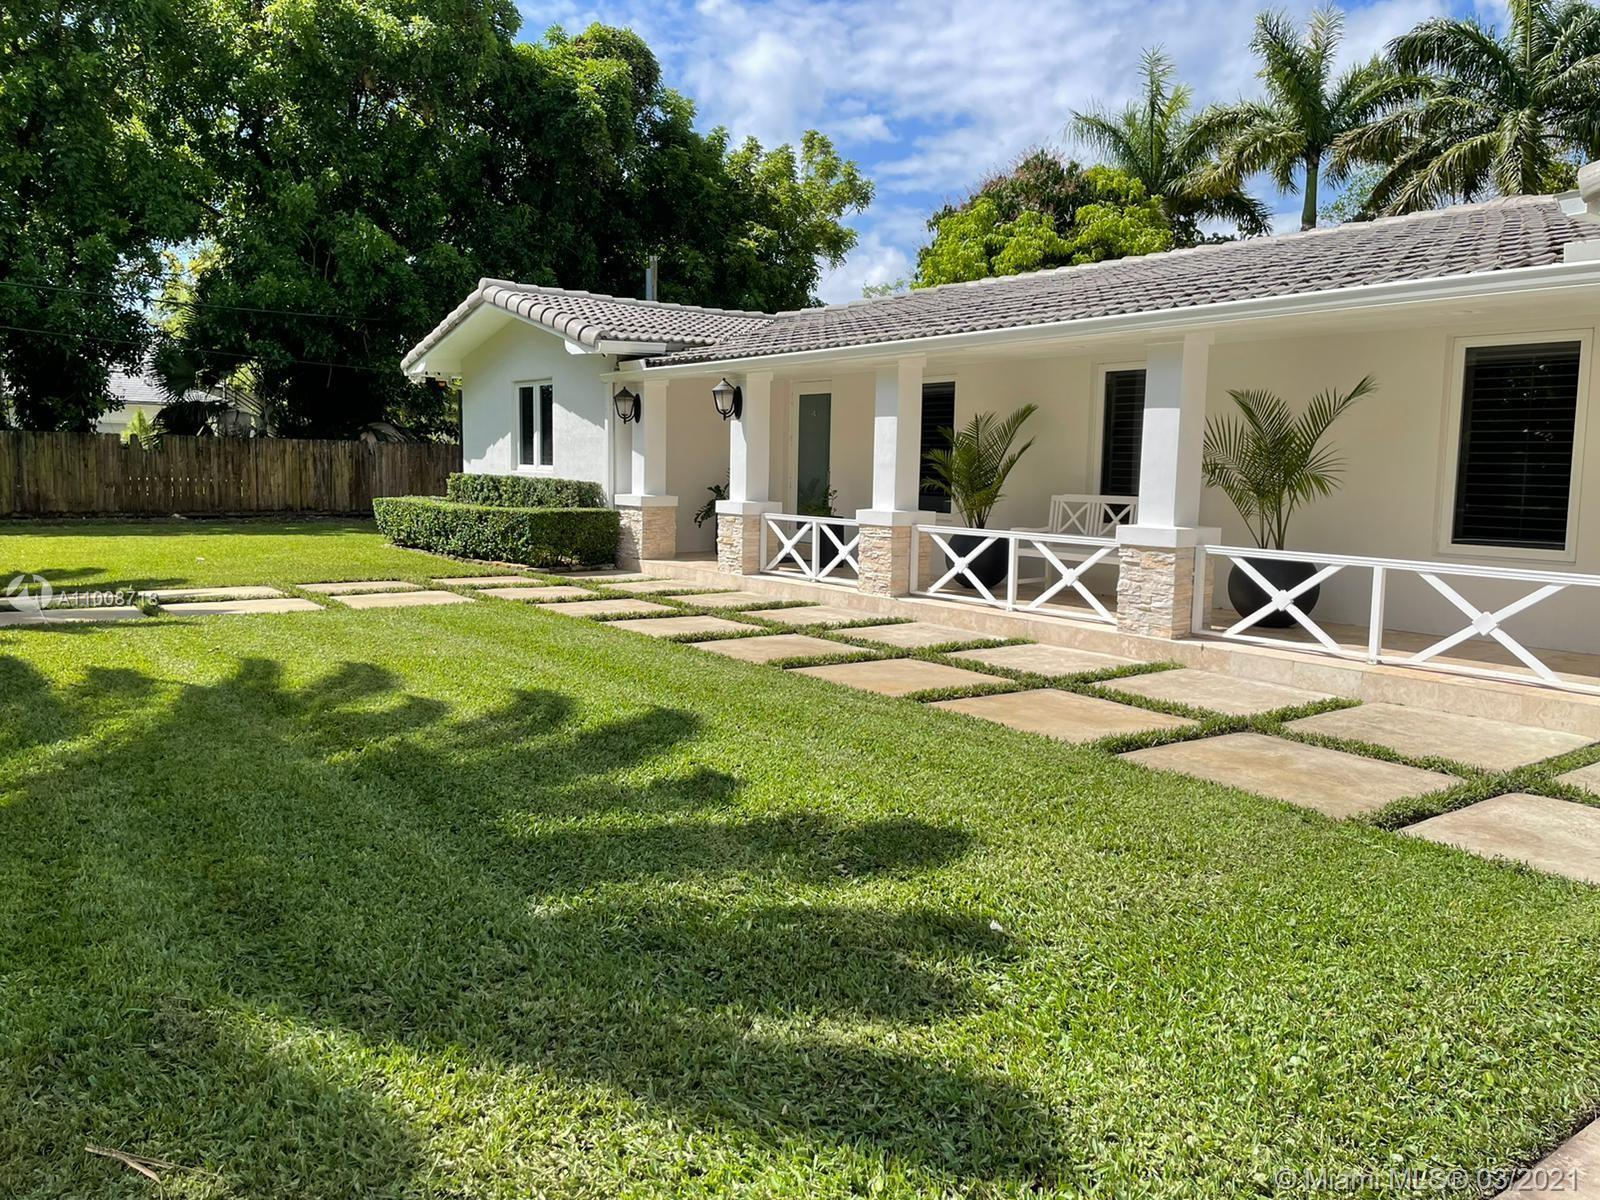 Pristine 3/2 on over 30K sqft lot.  Completely fenced with state of the art hedge. Palm trees galore